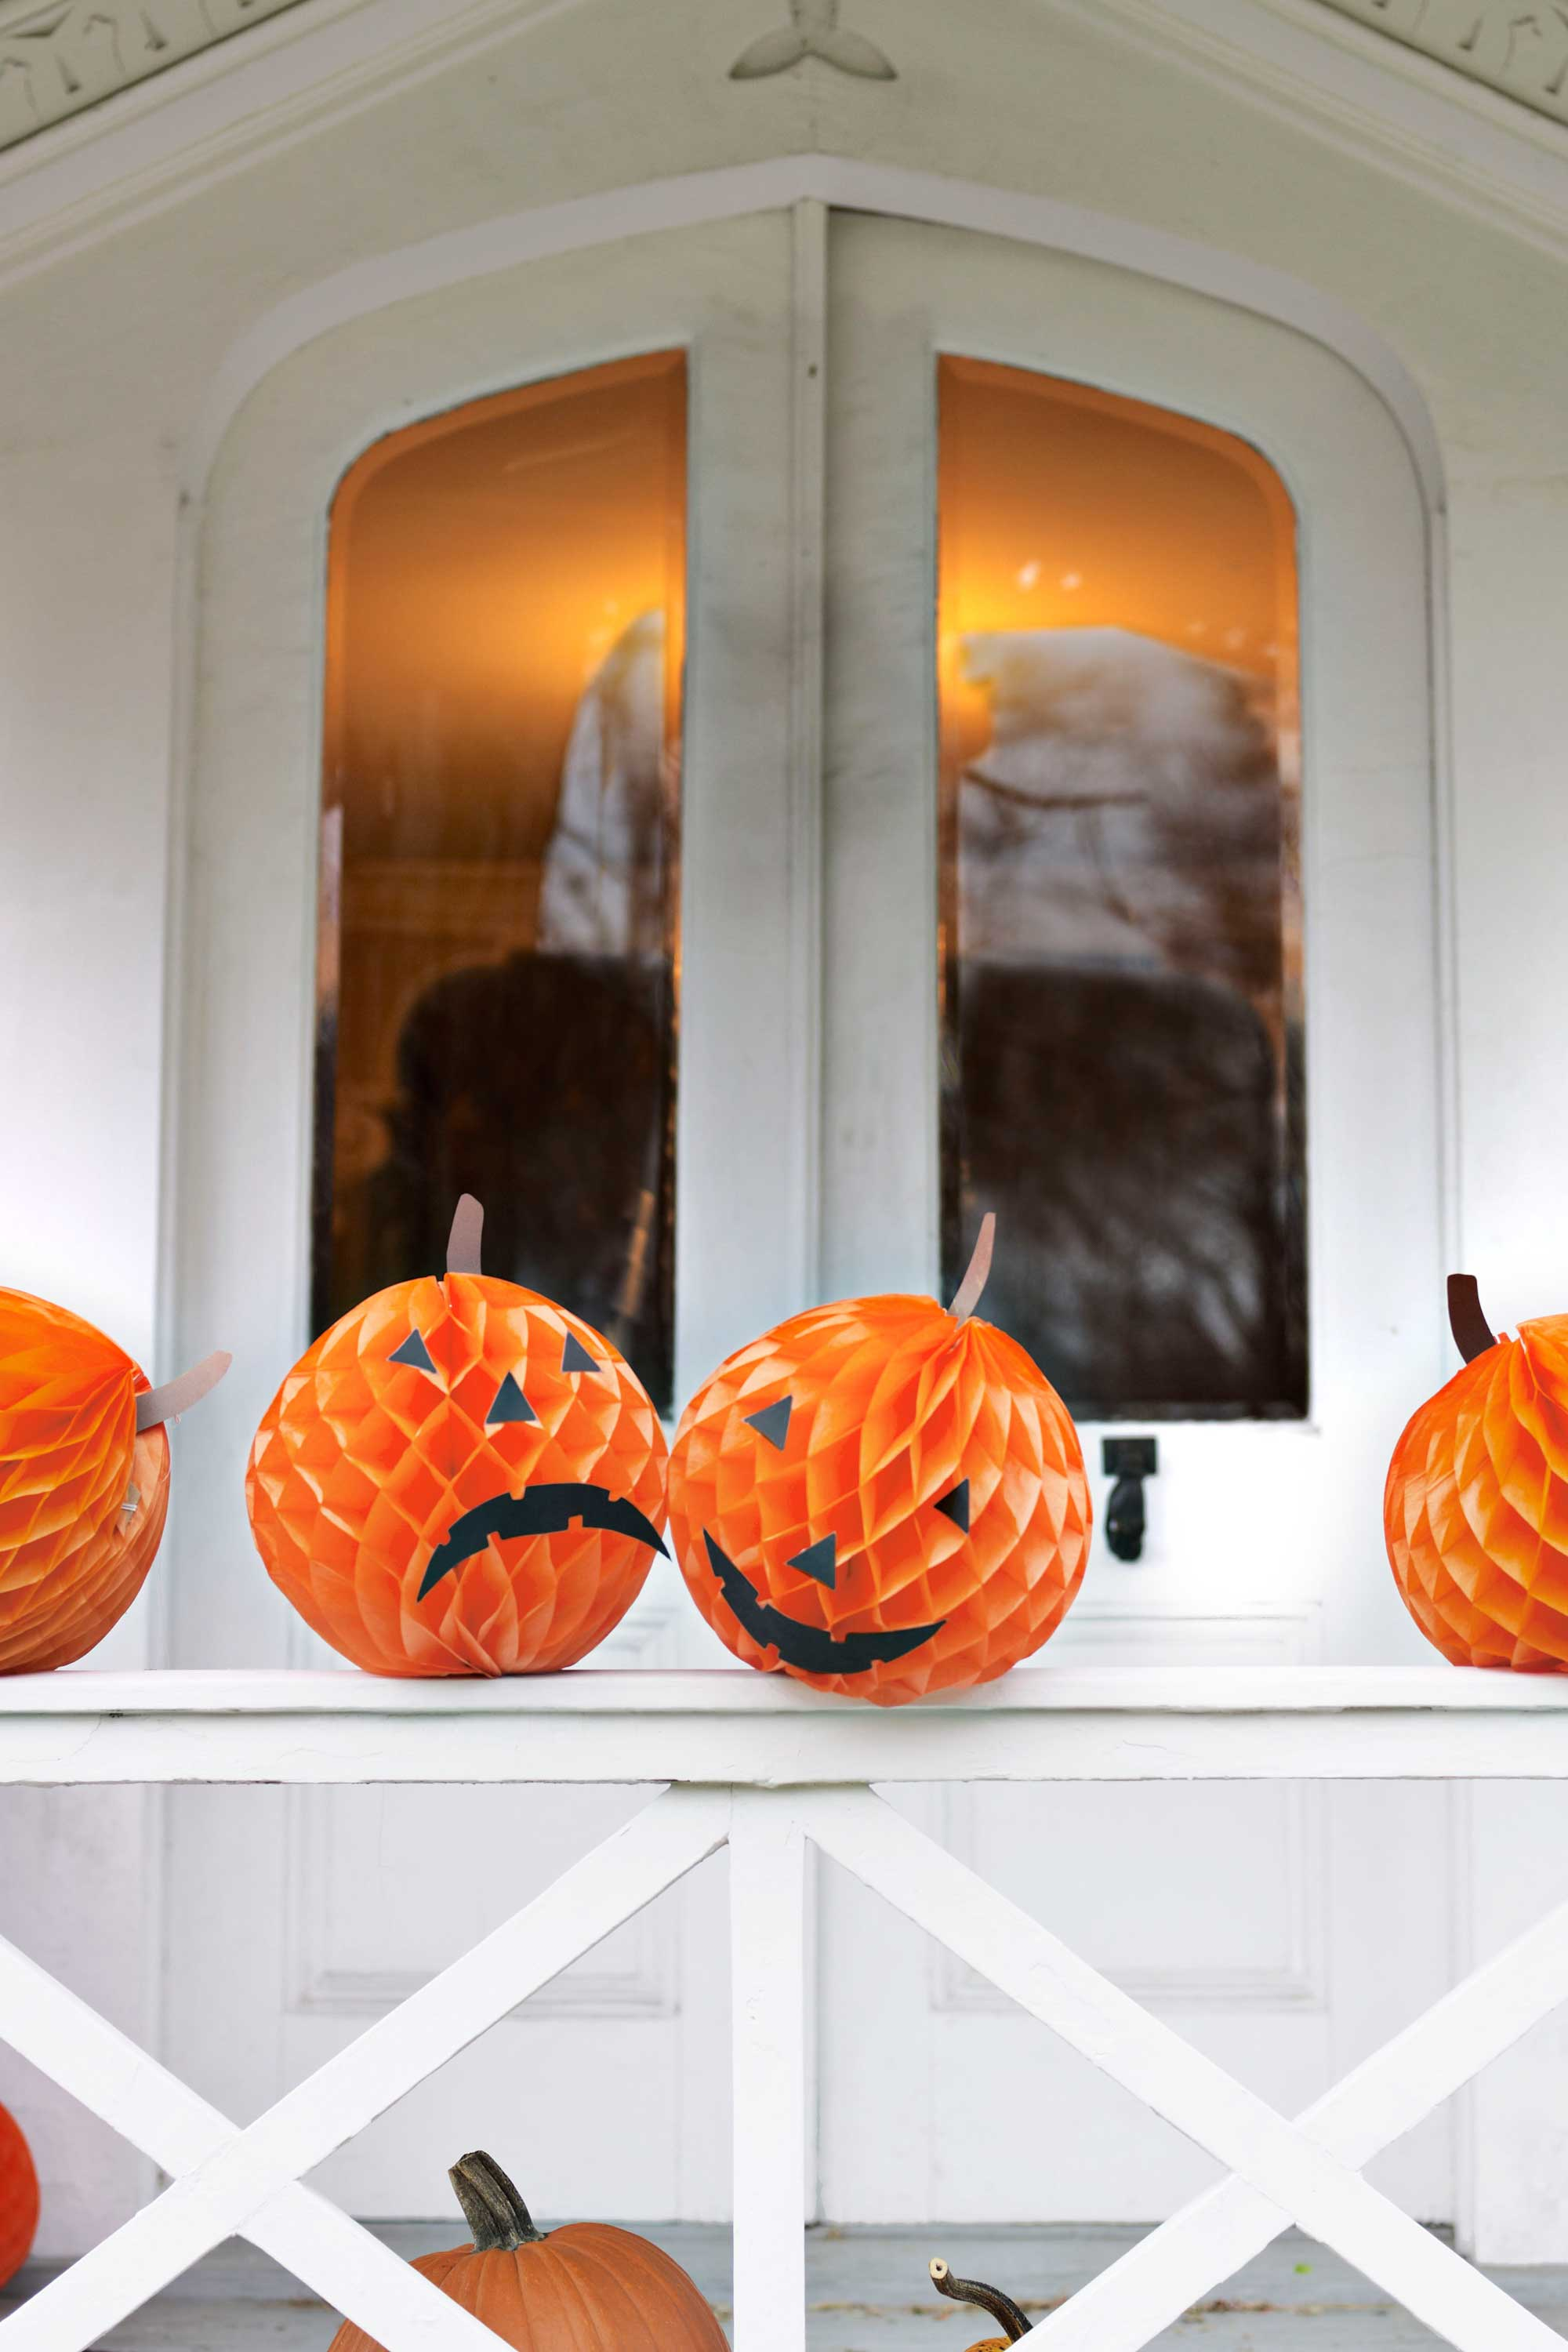 Easy homemade halloween decorations - 40 Easy Diy Halloween Decorations Homemade Do It Yourself Halloween Decor Ideas